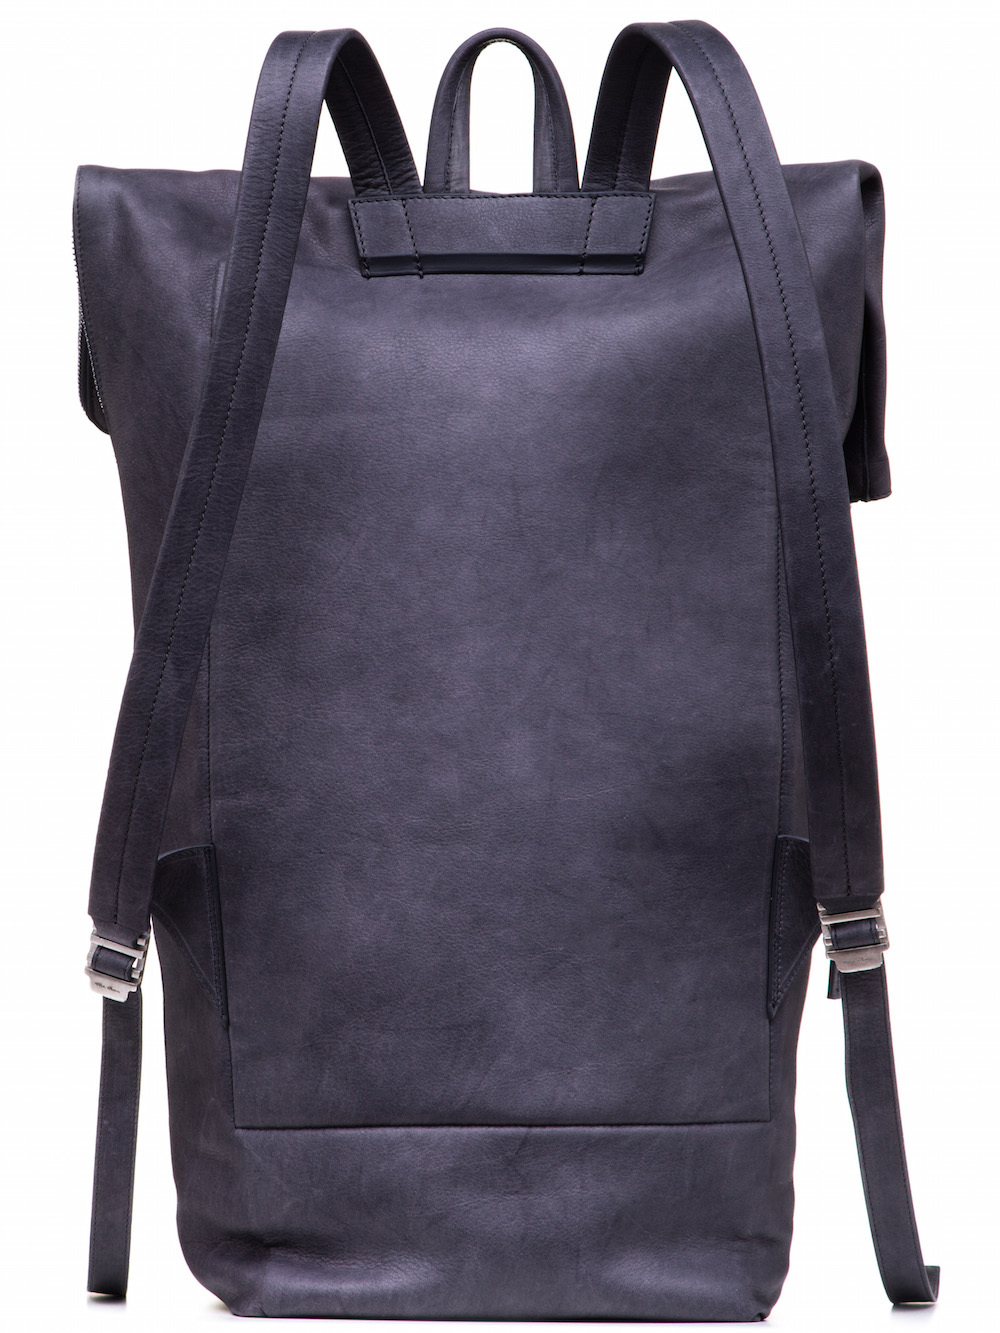 RICK OWENS DUFFLE BACKPACK IN PURPLE CALF LEATHER